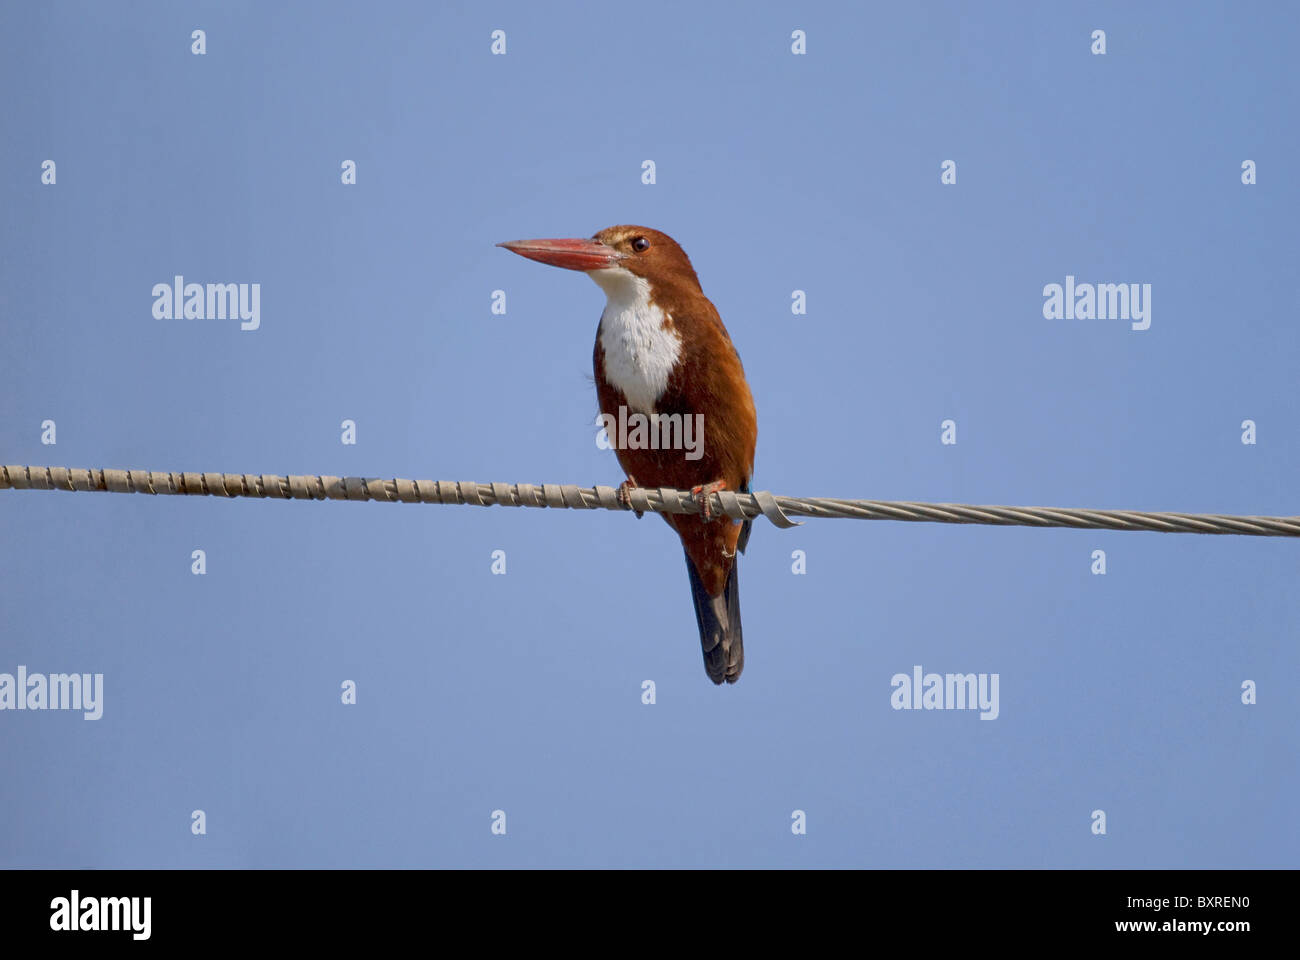 White Throated Kingfisher,   Scientific name of the species: Halcyon smyrnensis - Stock Image